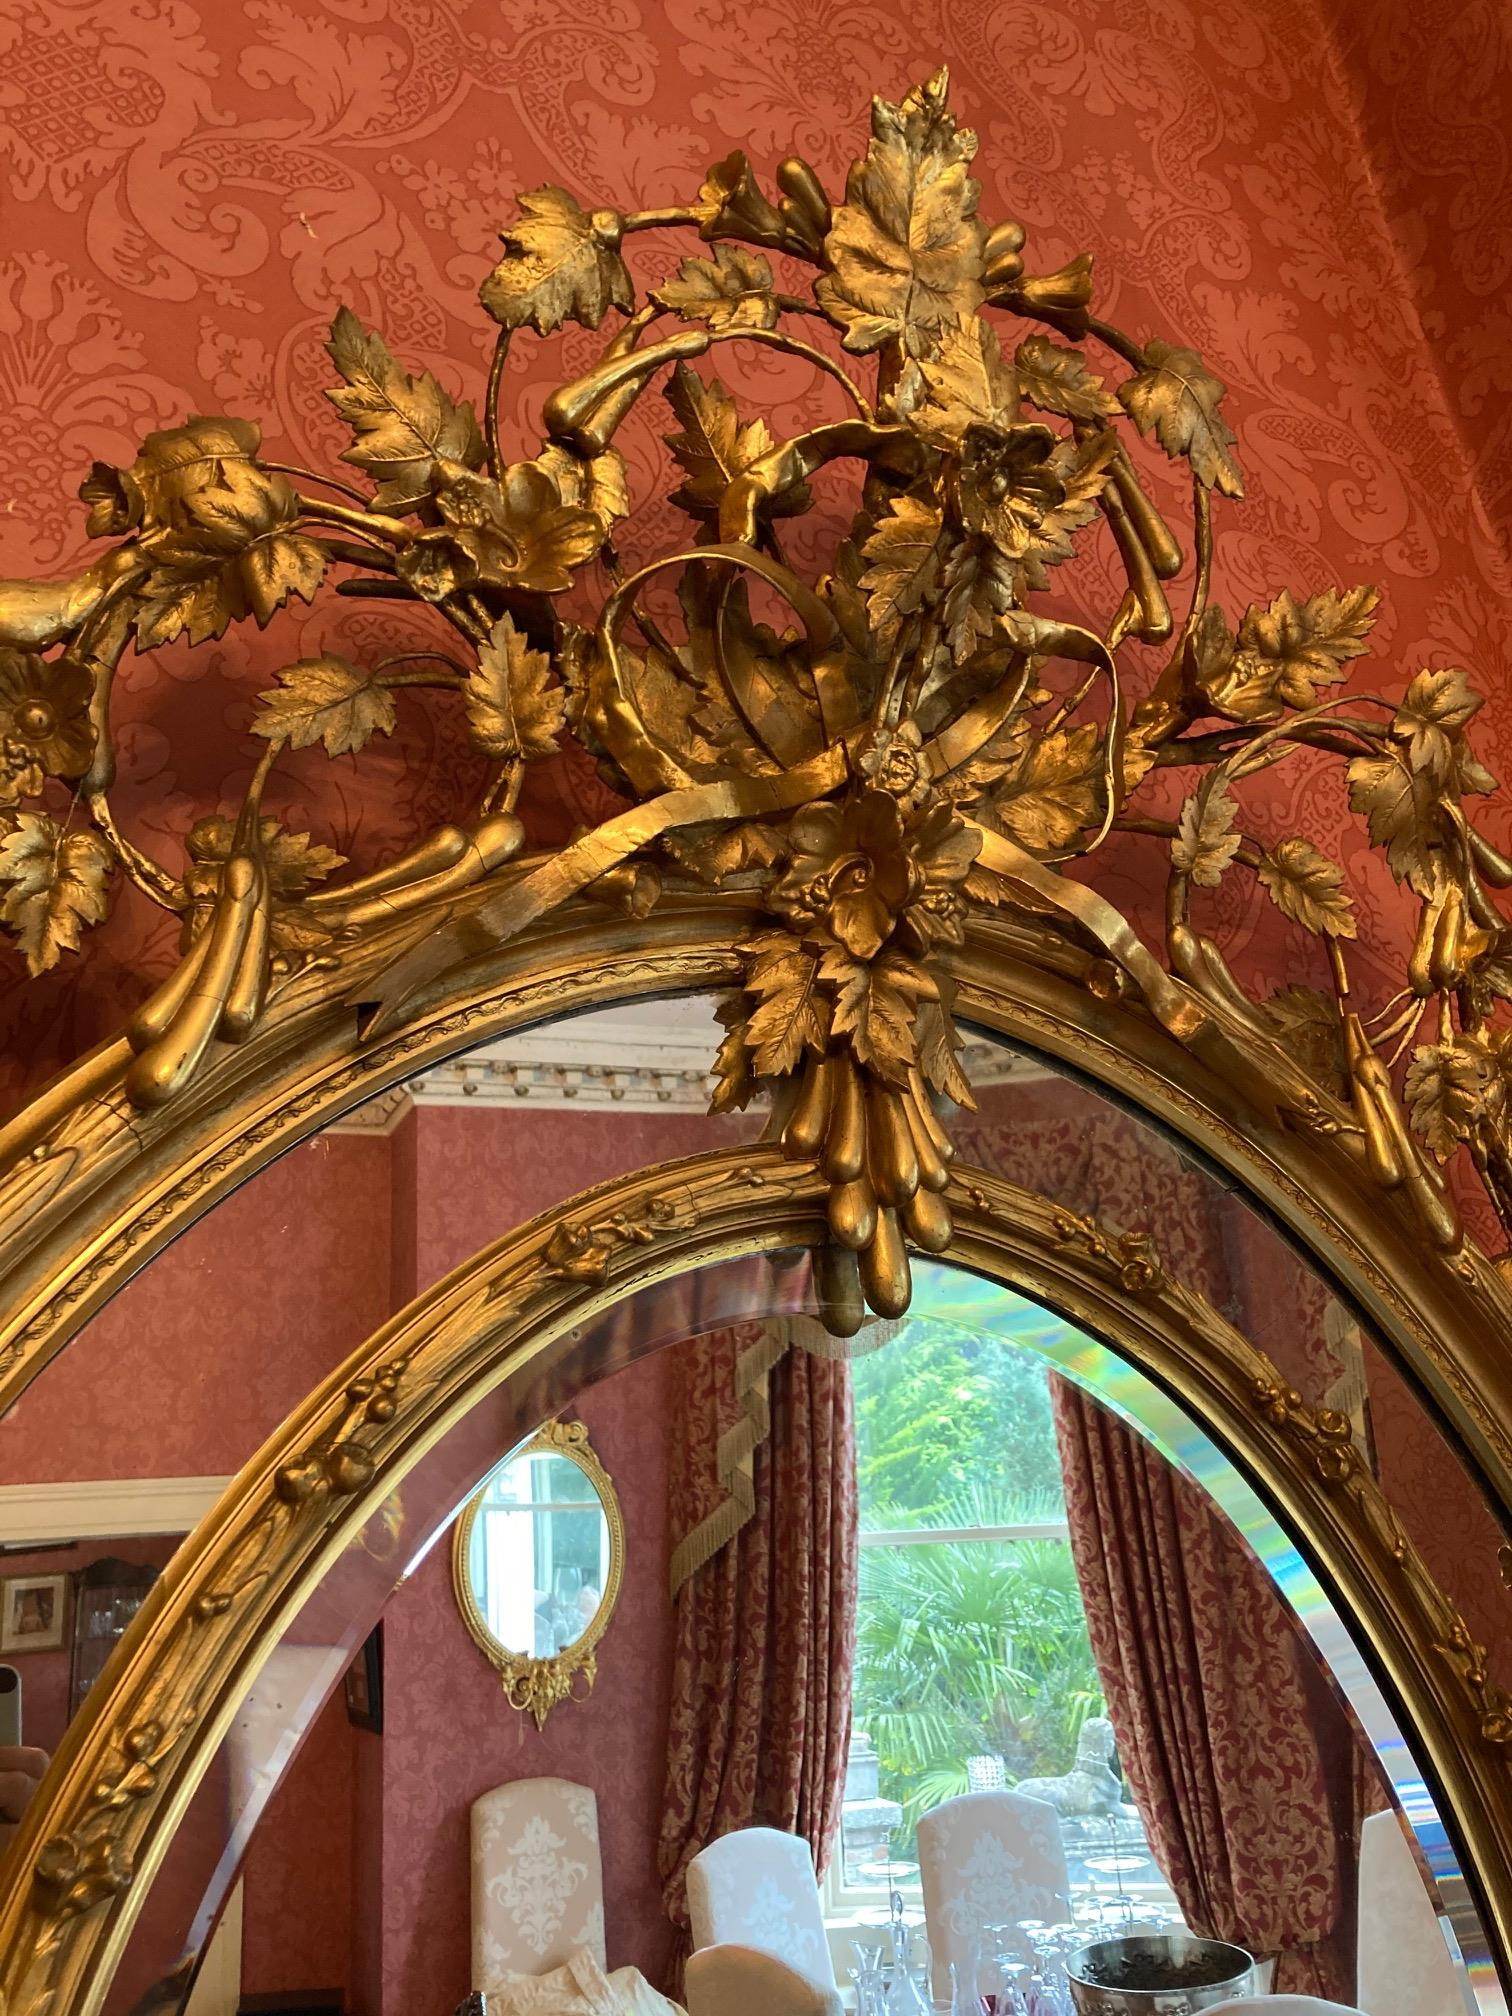 A superb large 19th Century oval gilt Wall Mirror, the ornate crest with scrolling foliage and - Image 3 of 7